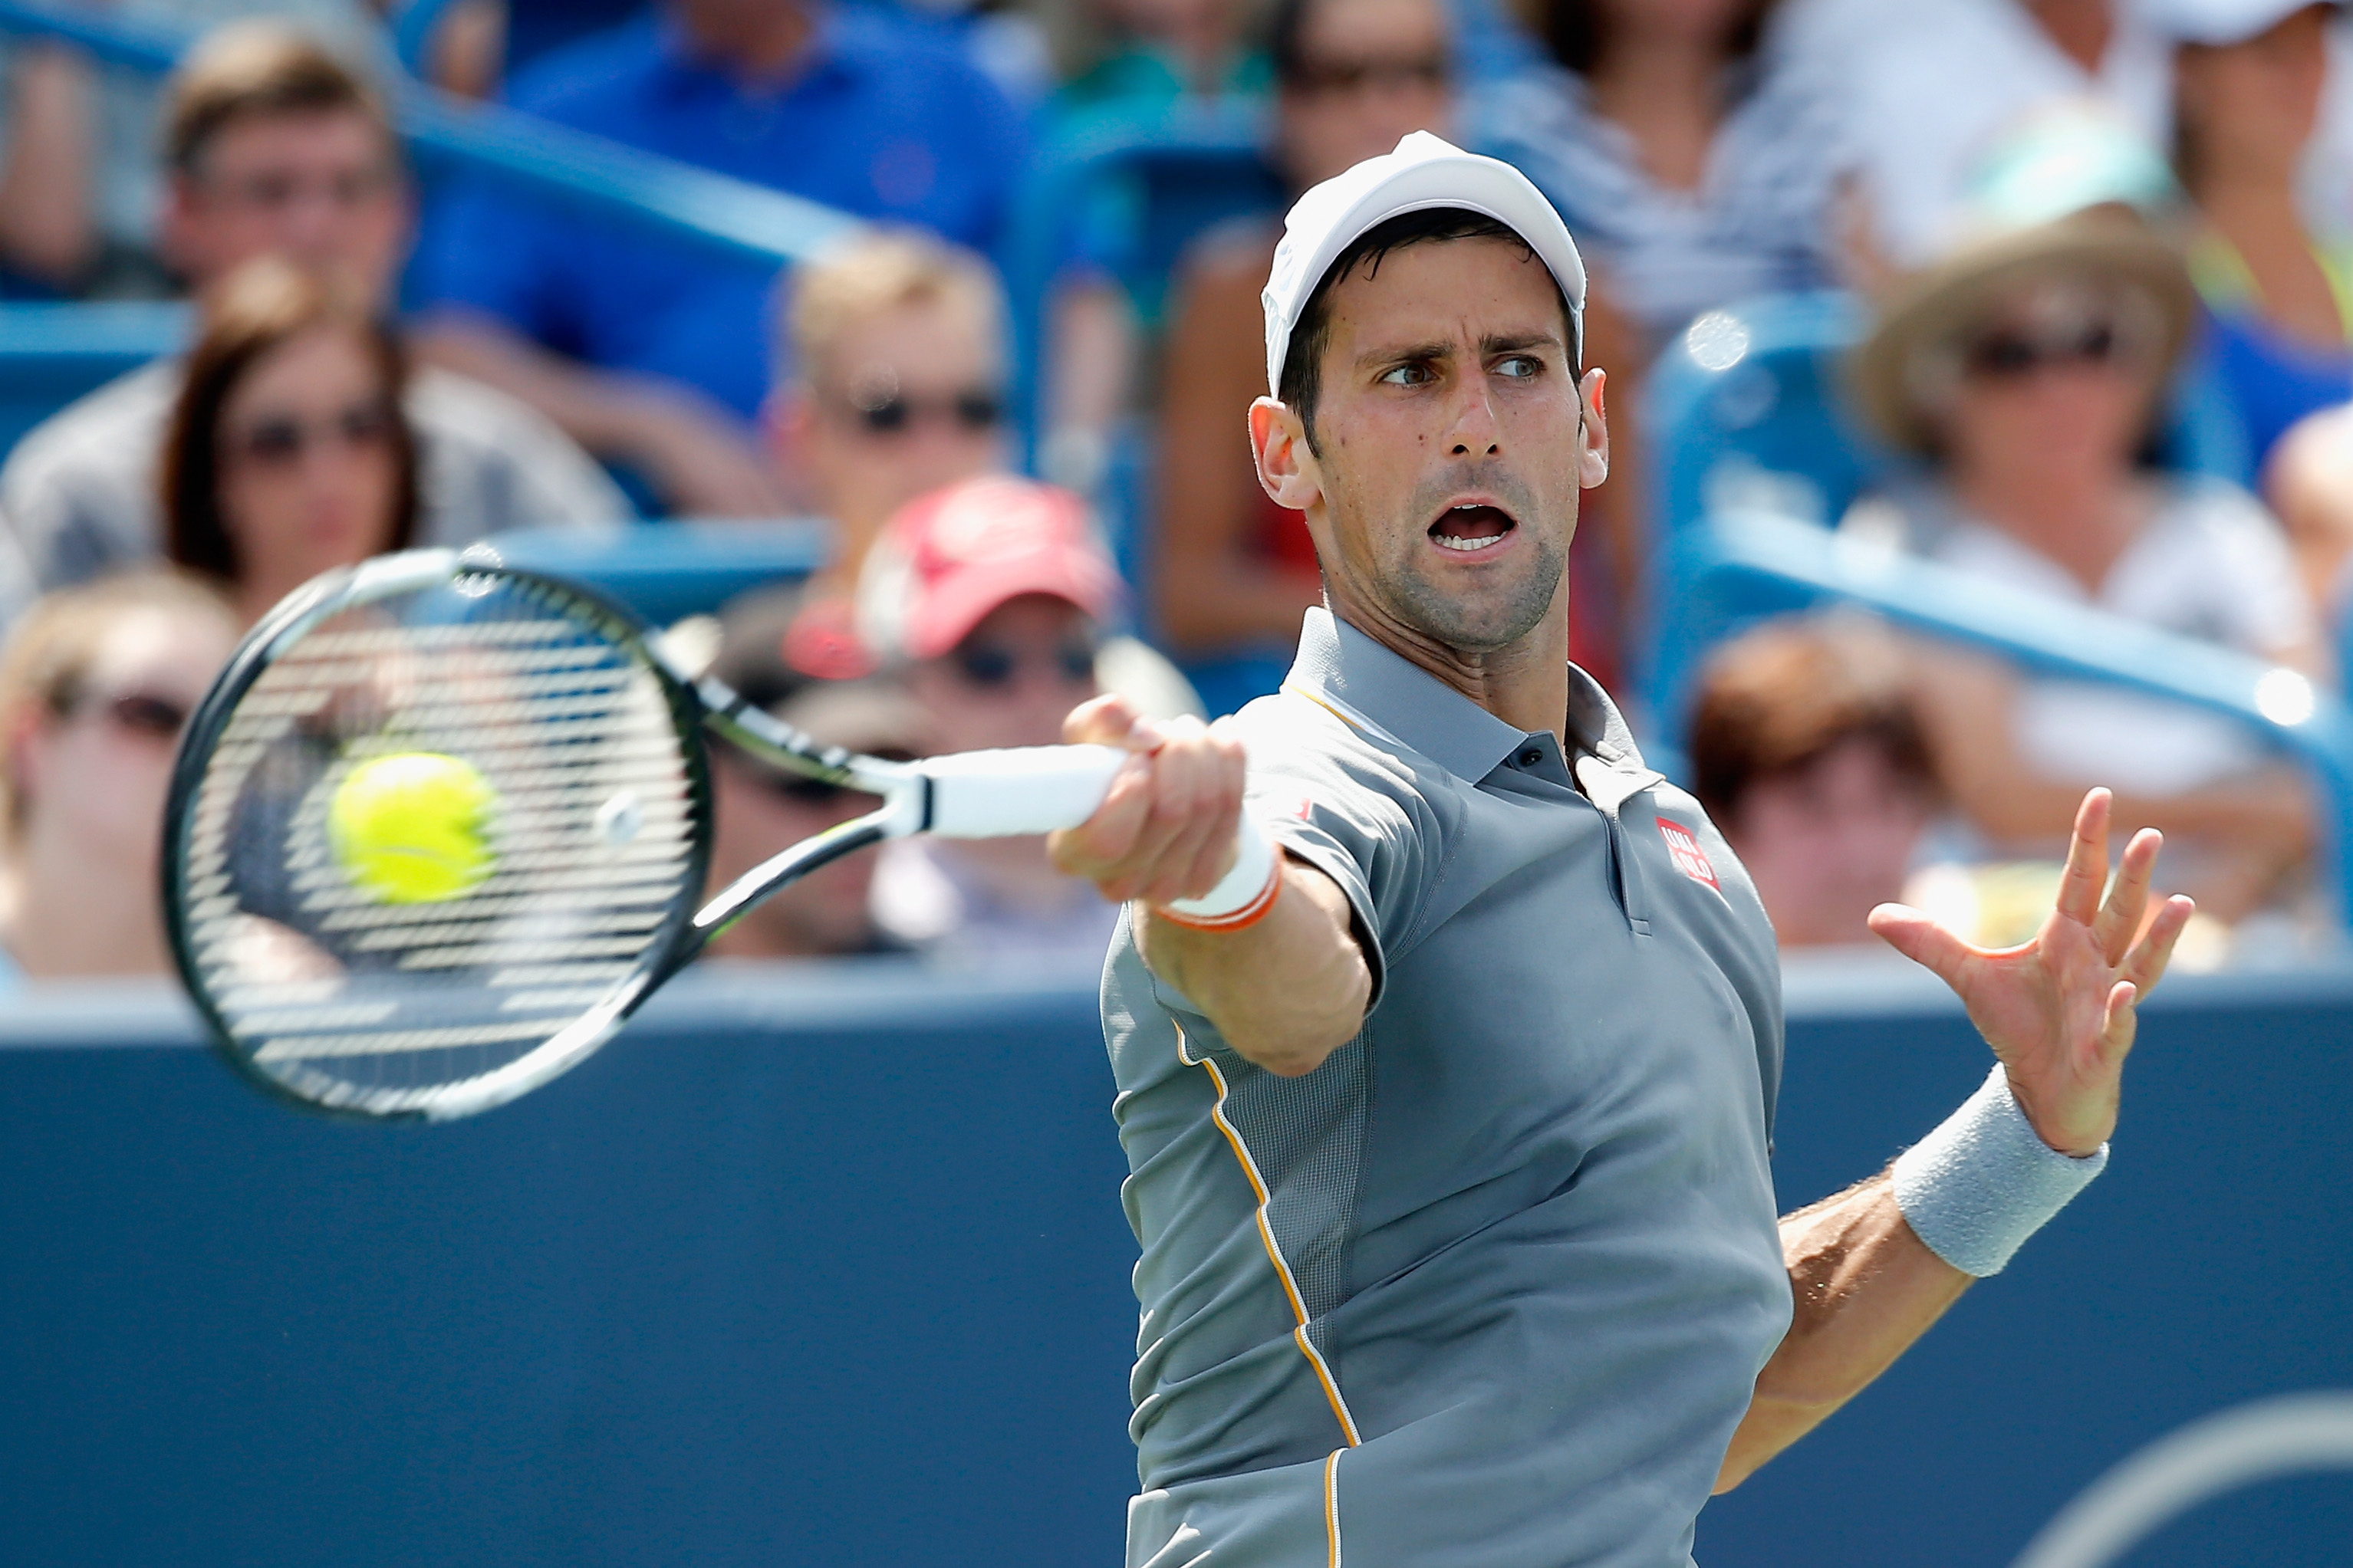 US Open Tennis 2015: Dates, Tickets, Draw For Grand Slam